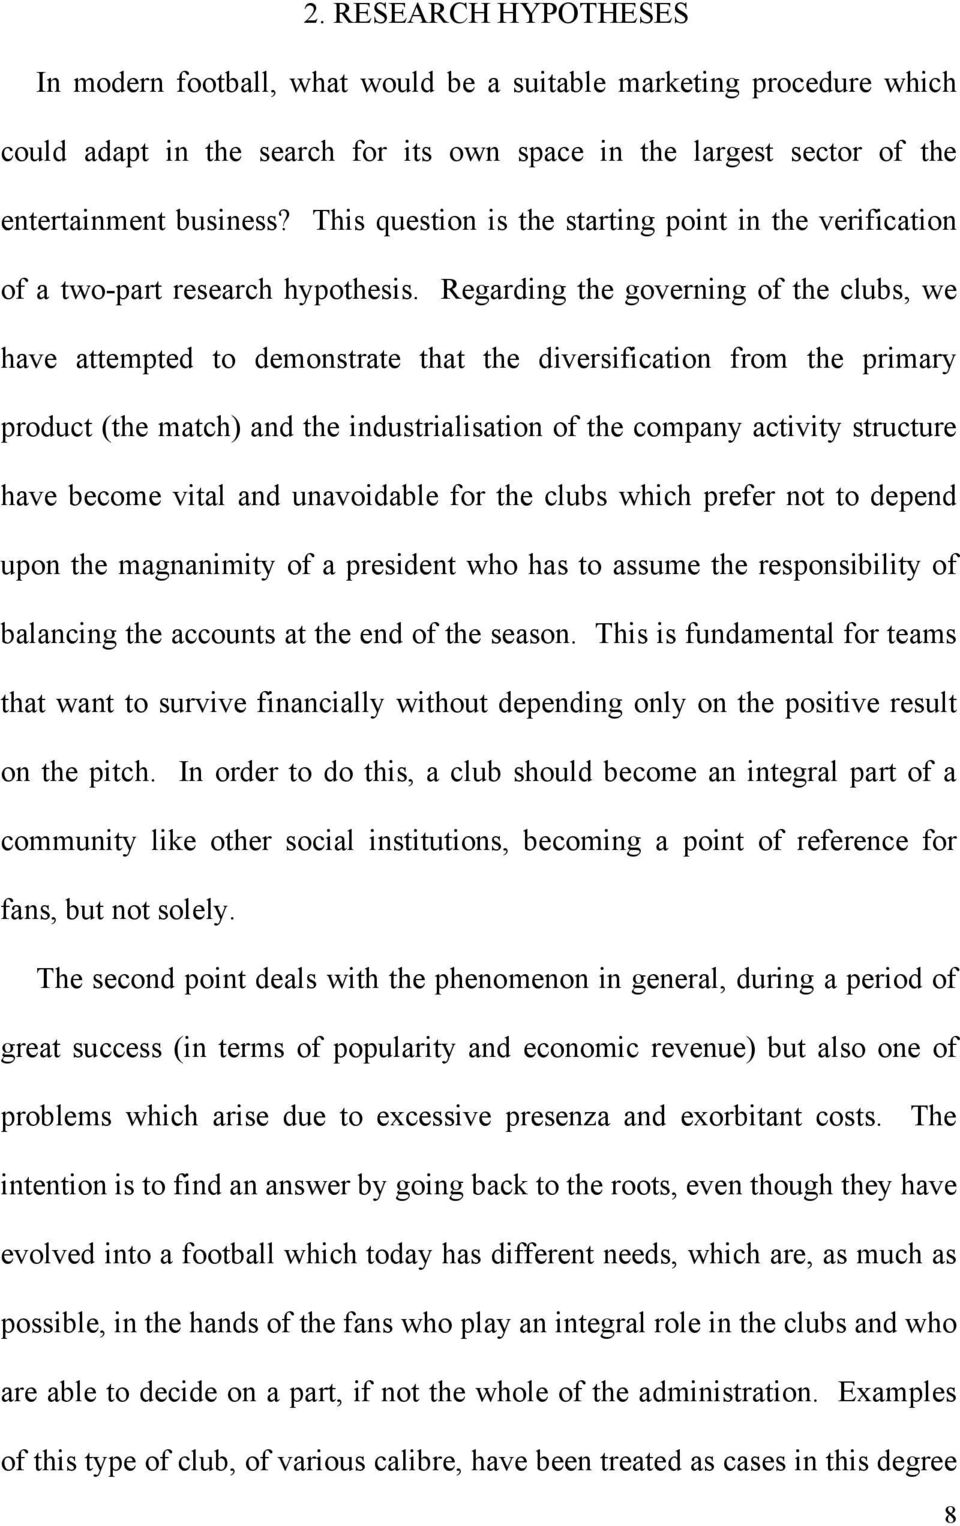 Regarding the governing of the clubs, we have attempted to demonstrate that the diversification from the primary product (the match) and the industrialisation of the company activity structure have